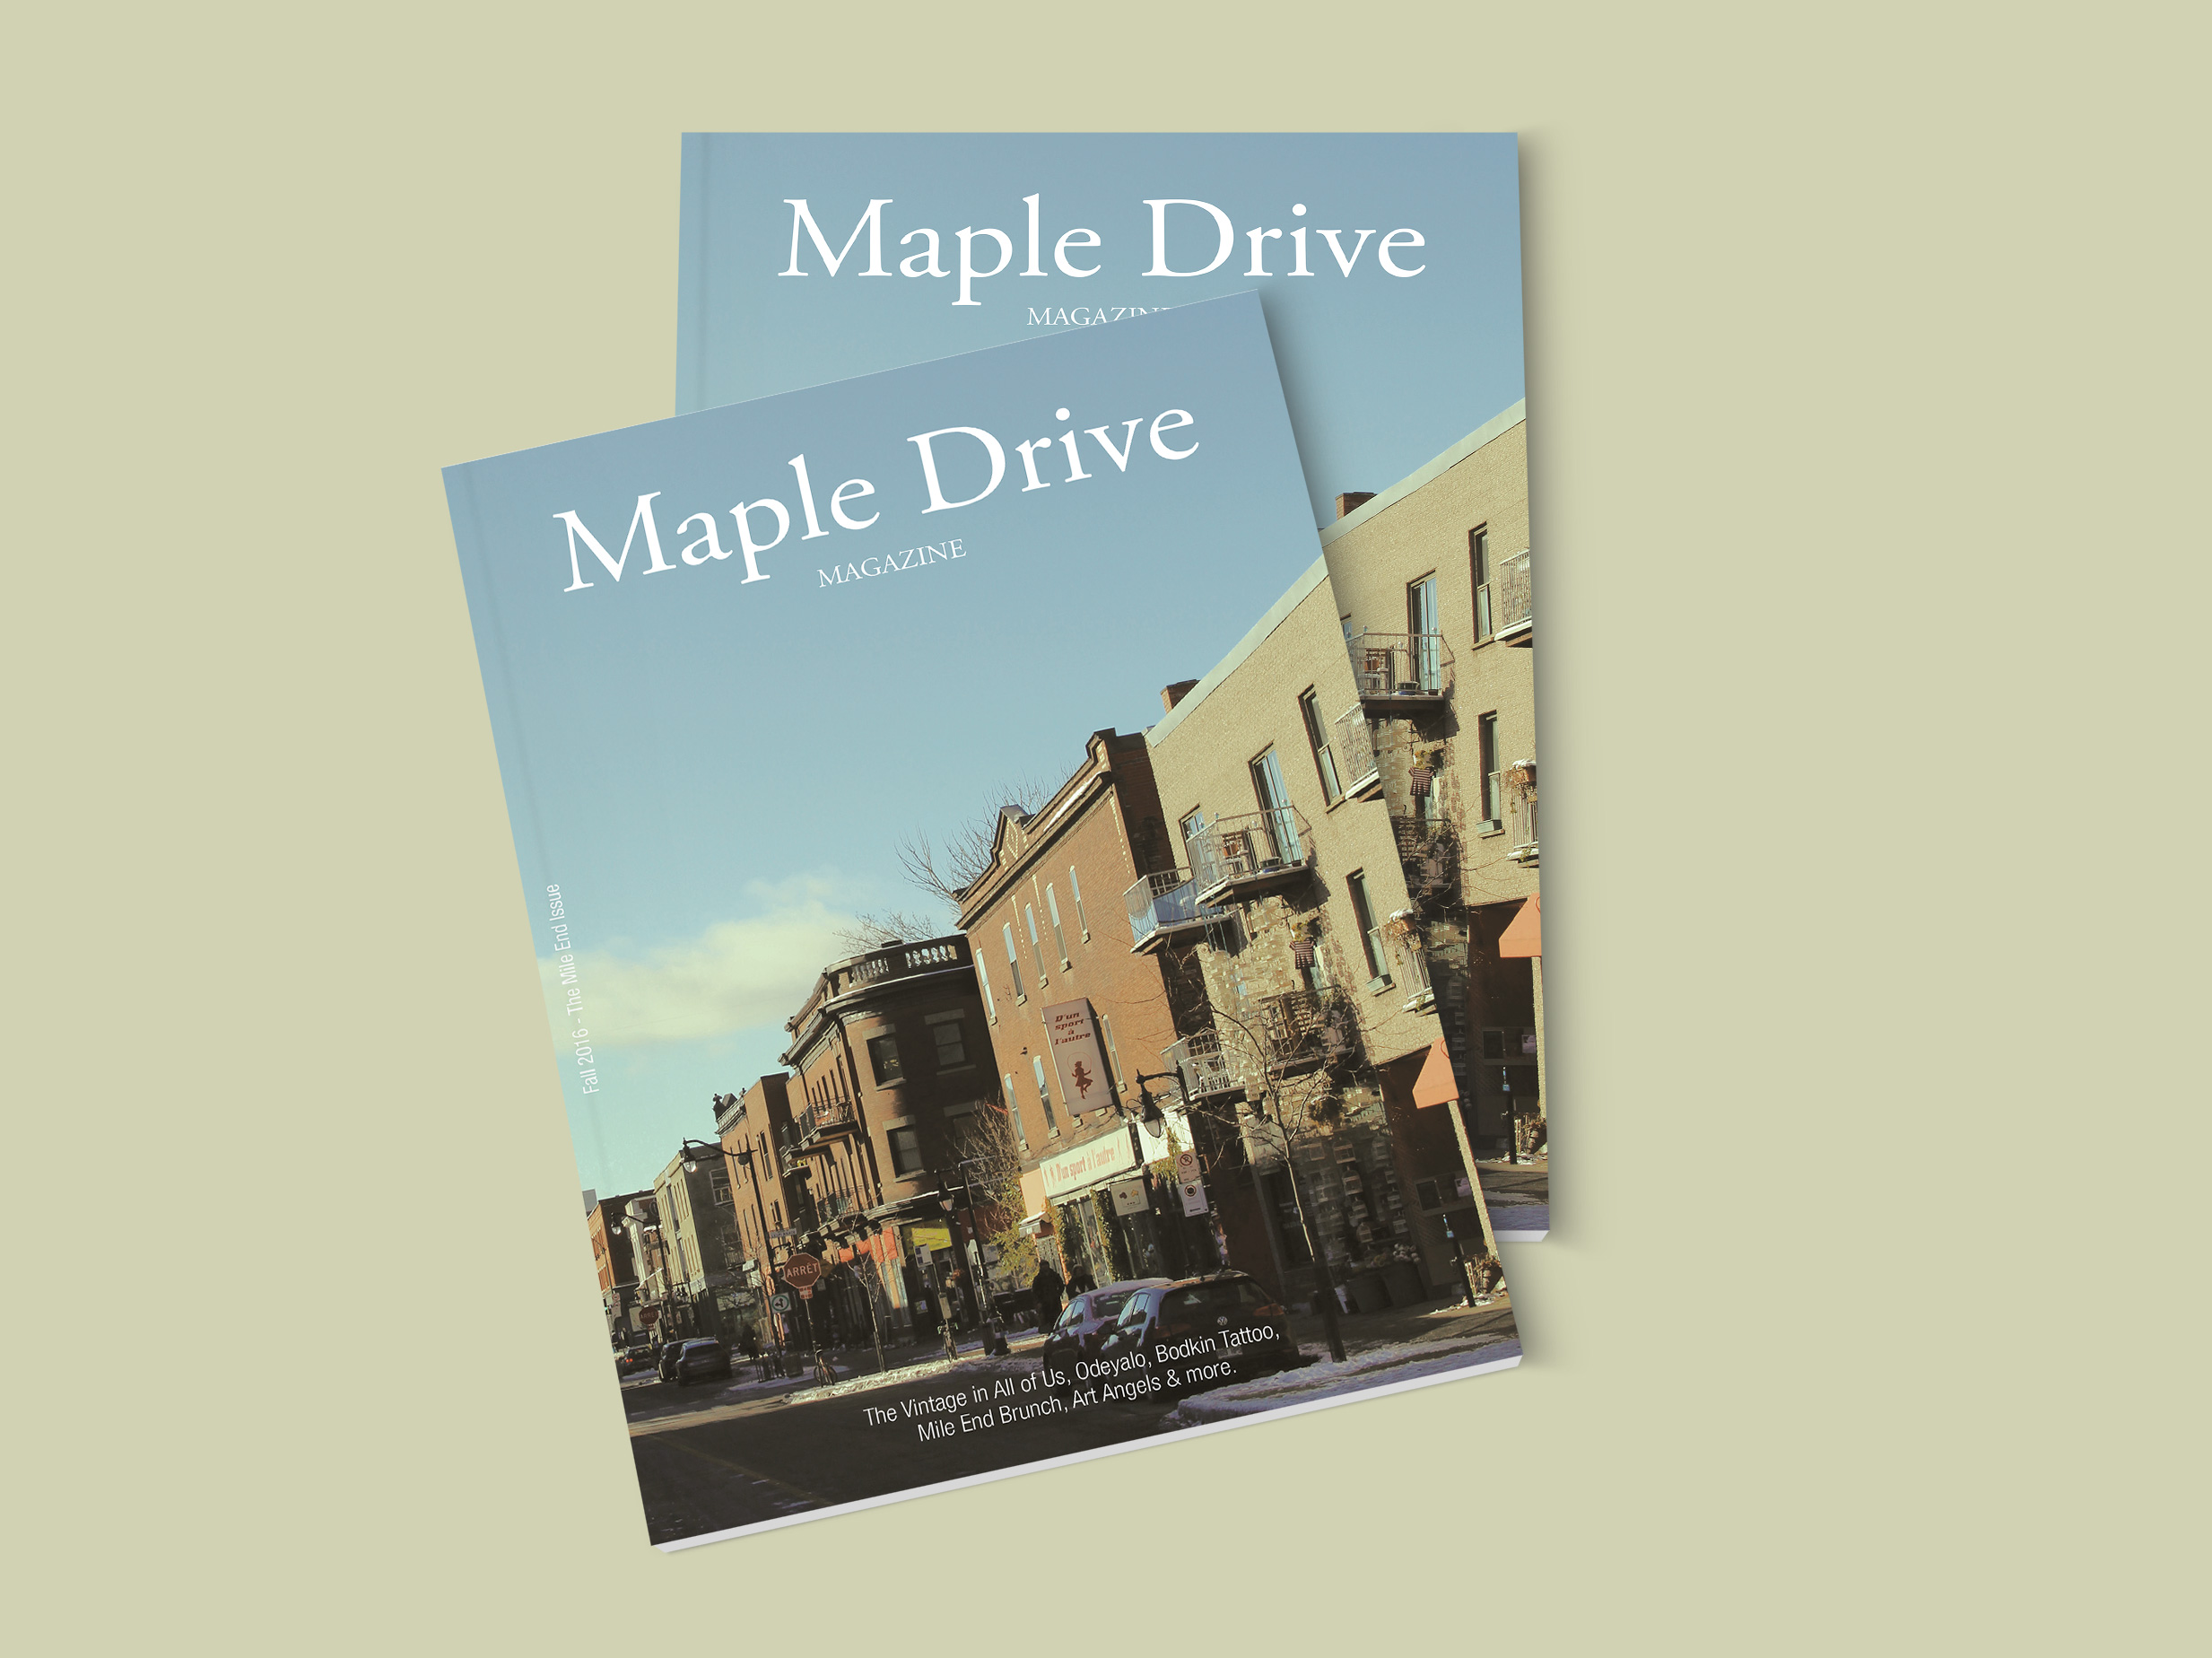 Maple Drive Magazine - Cover